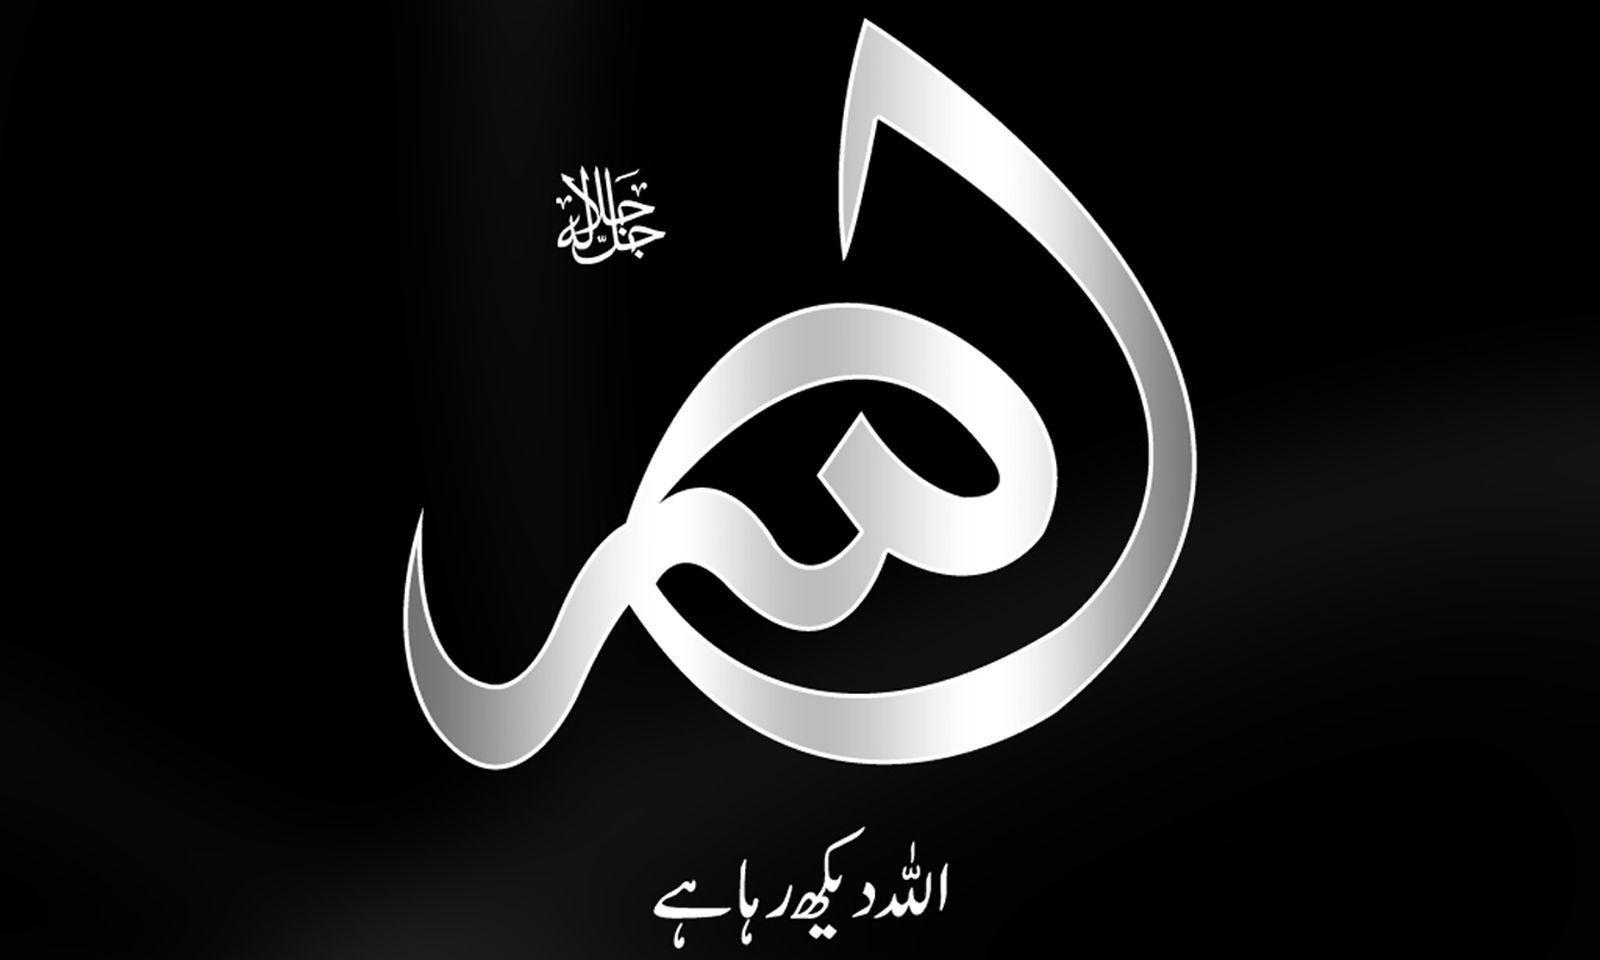 Beautiful Allah Calligraphy Wallpaper Desktop #13124 Wallpaper ...